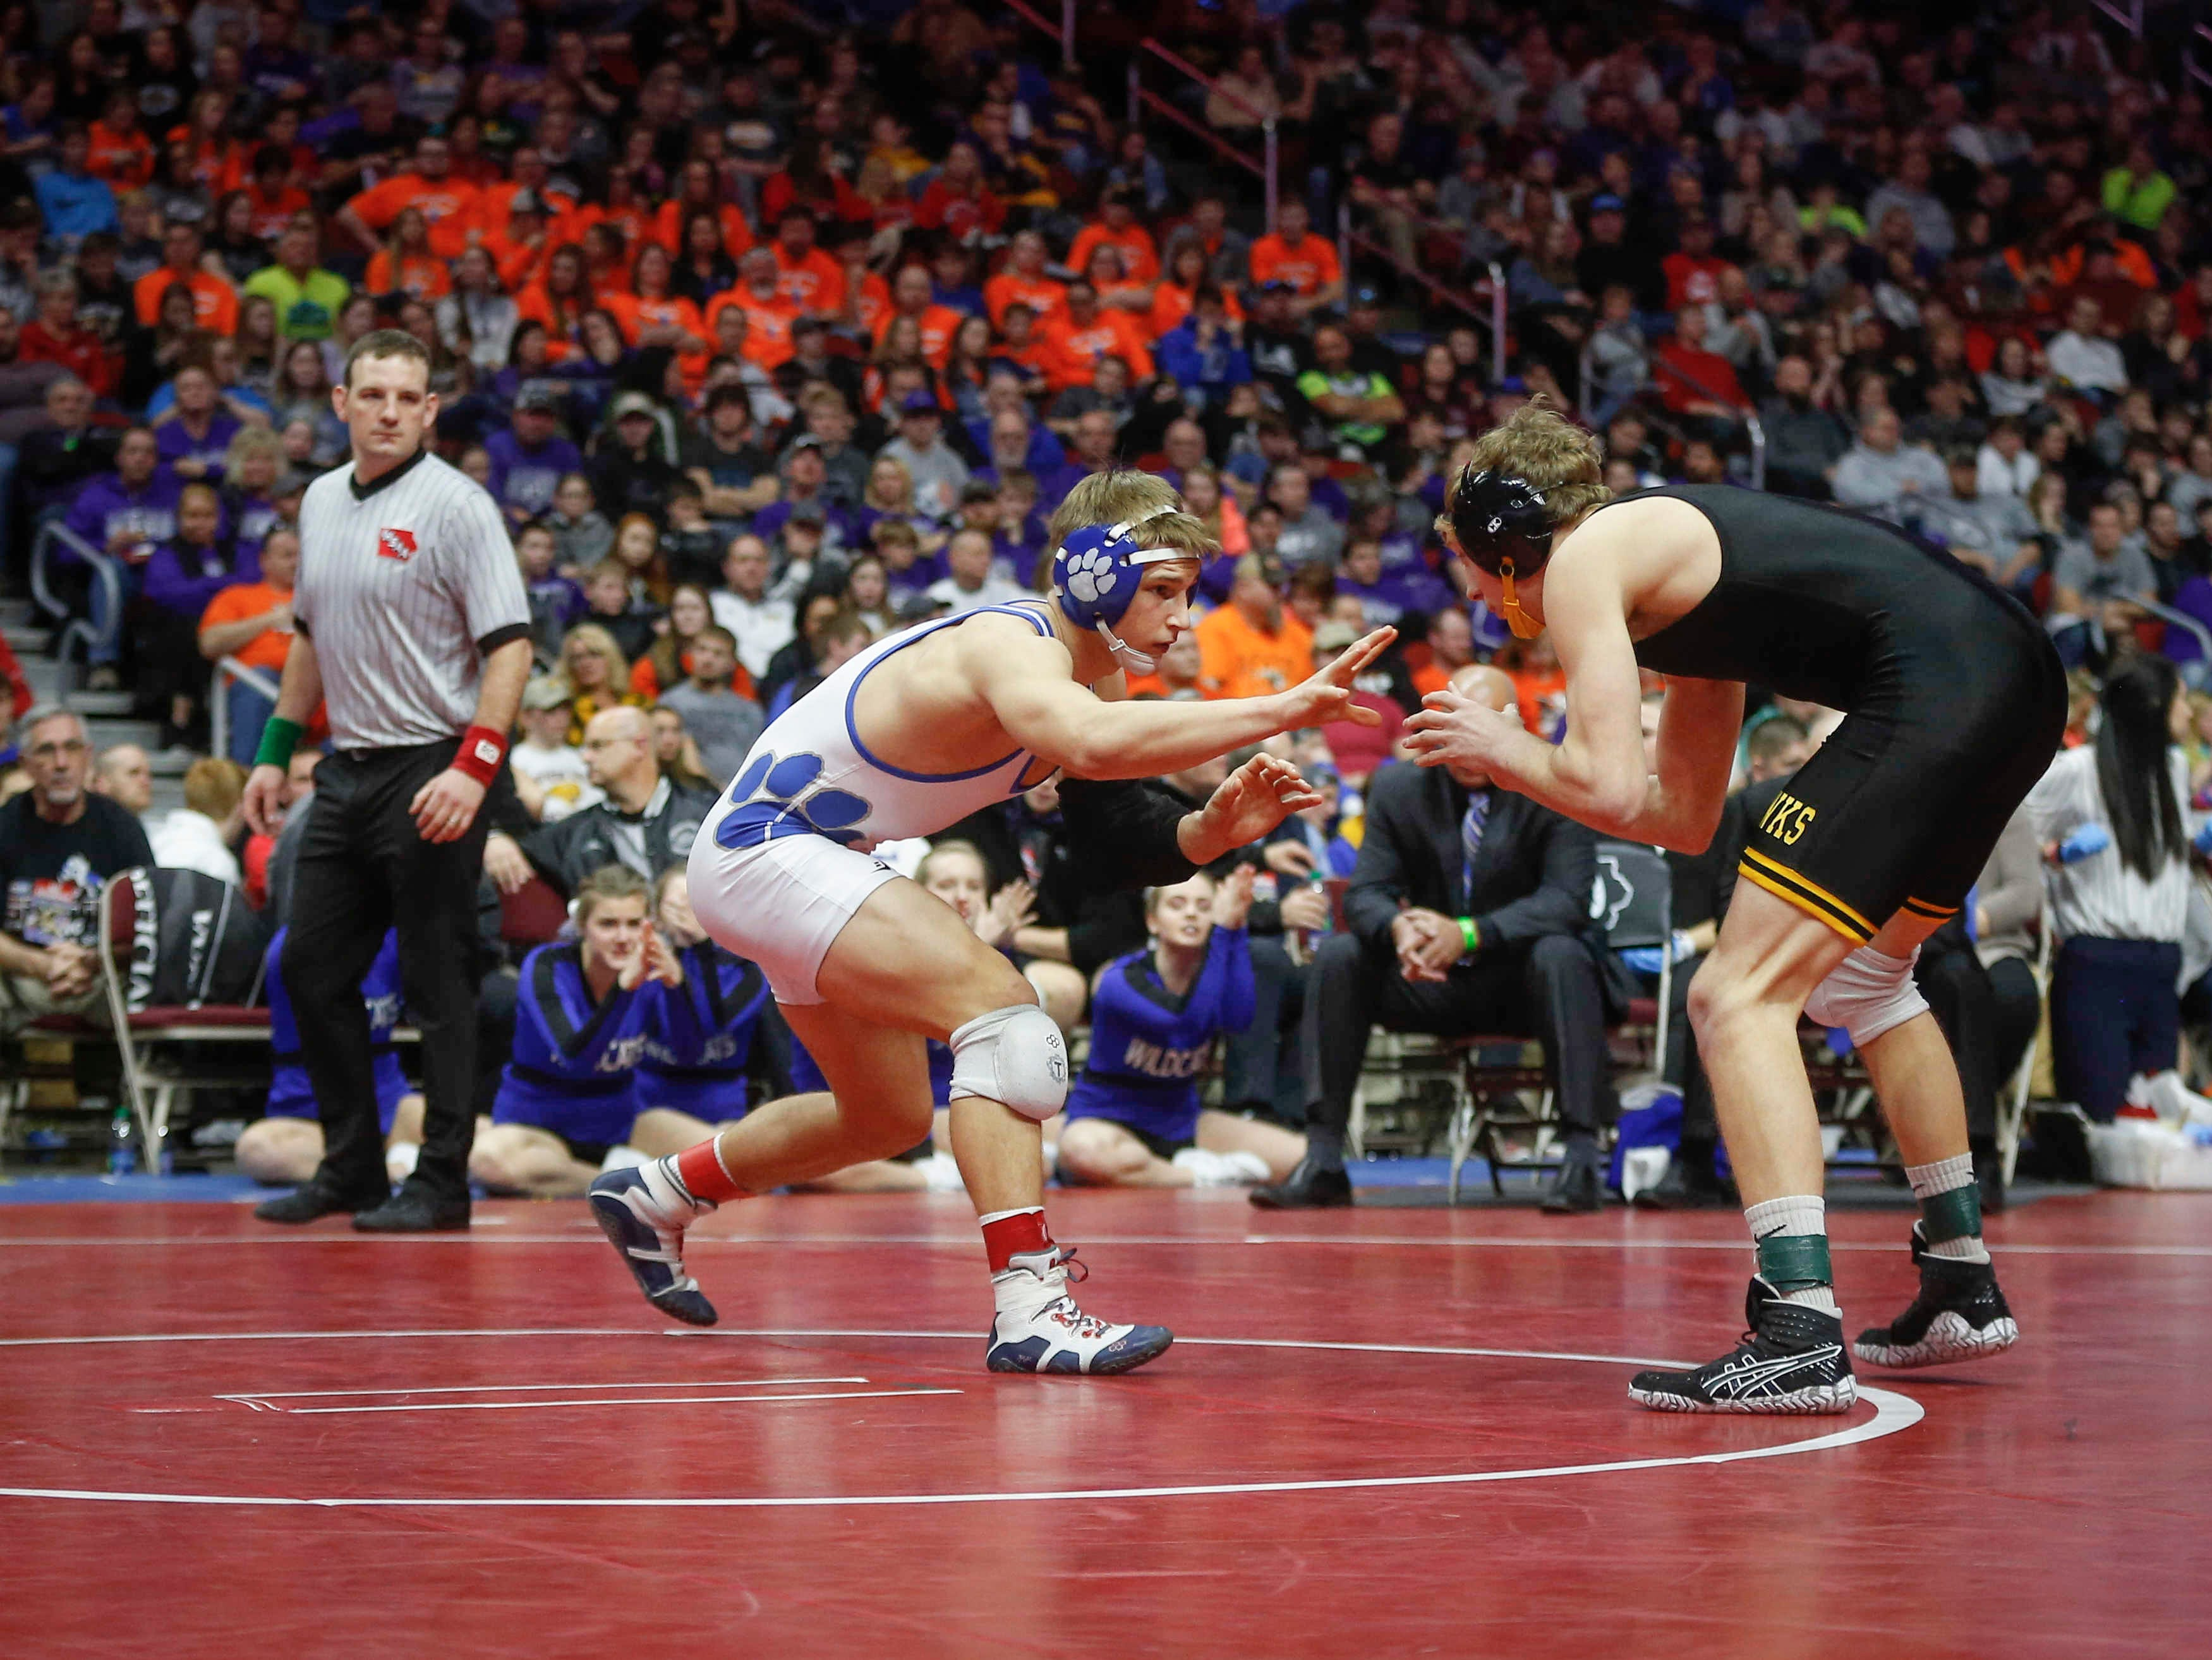 Woodbury Central junior Wade Mitchell, left, battles Emmetsburg senior Spencer Griffin en route to a Class 1A state title win at 145 pounds on Saturday, Feb. 16, 2019, at Wells Fargo Arena in Des Moines.